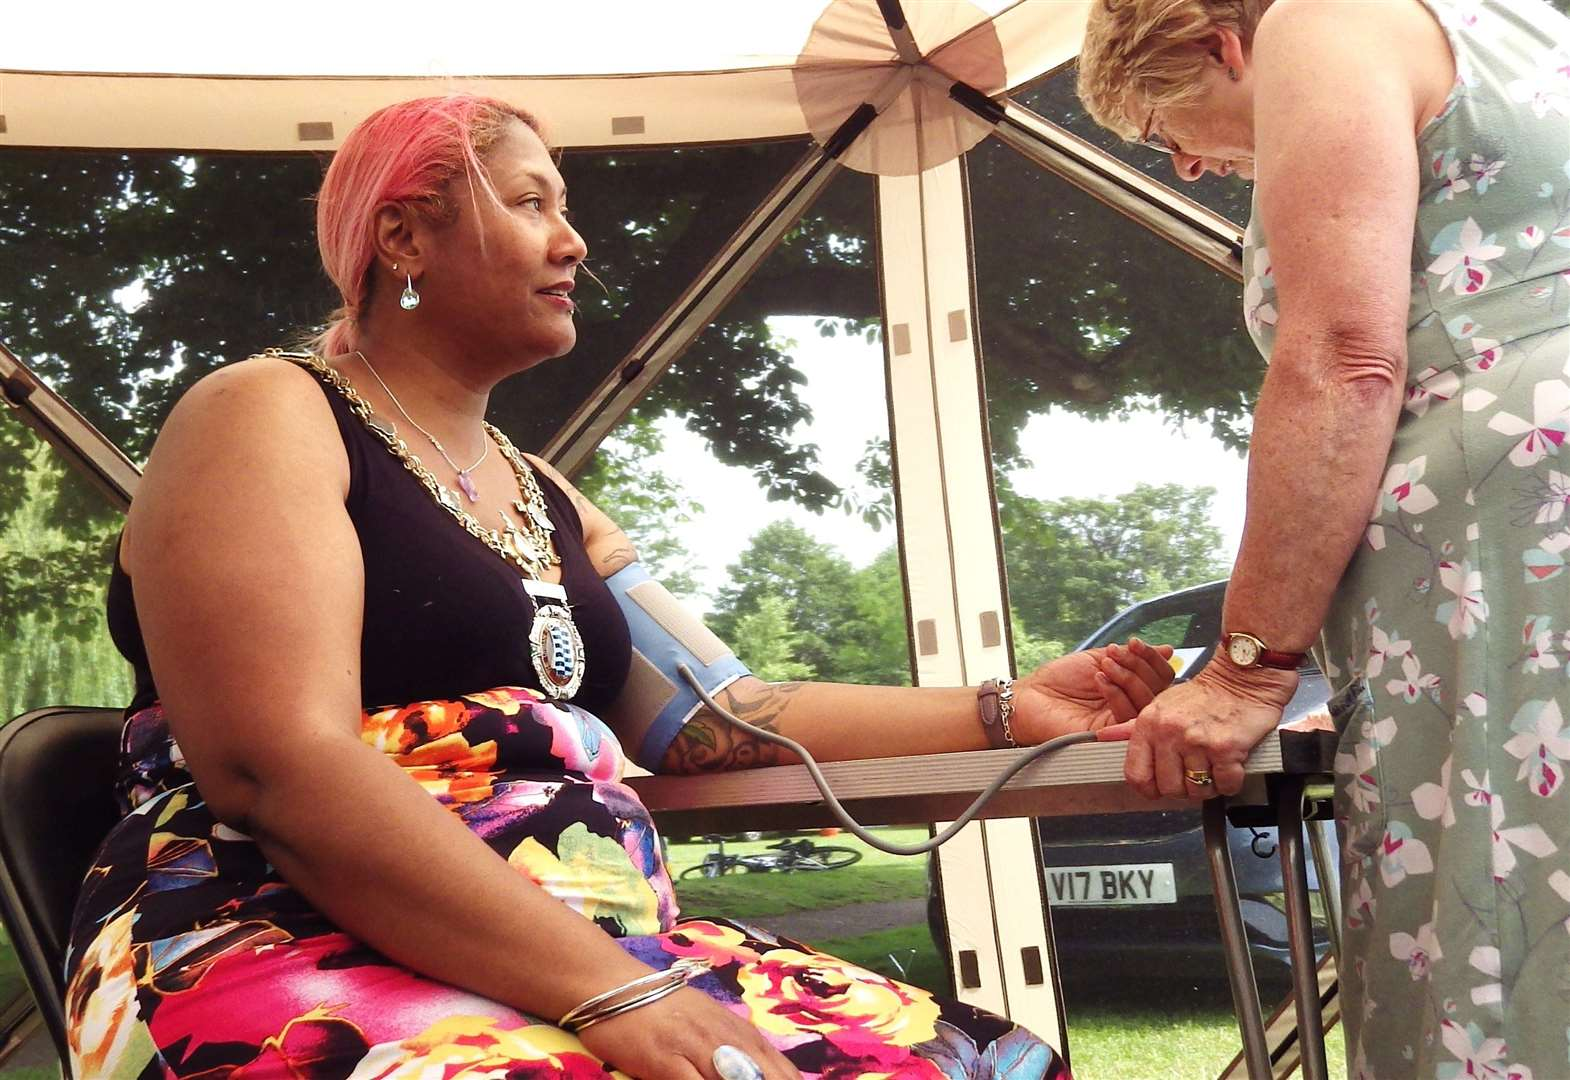 Mayor of Diss has blood pressure test